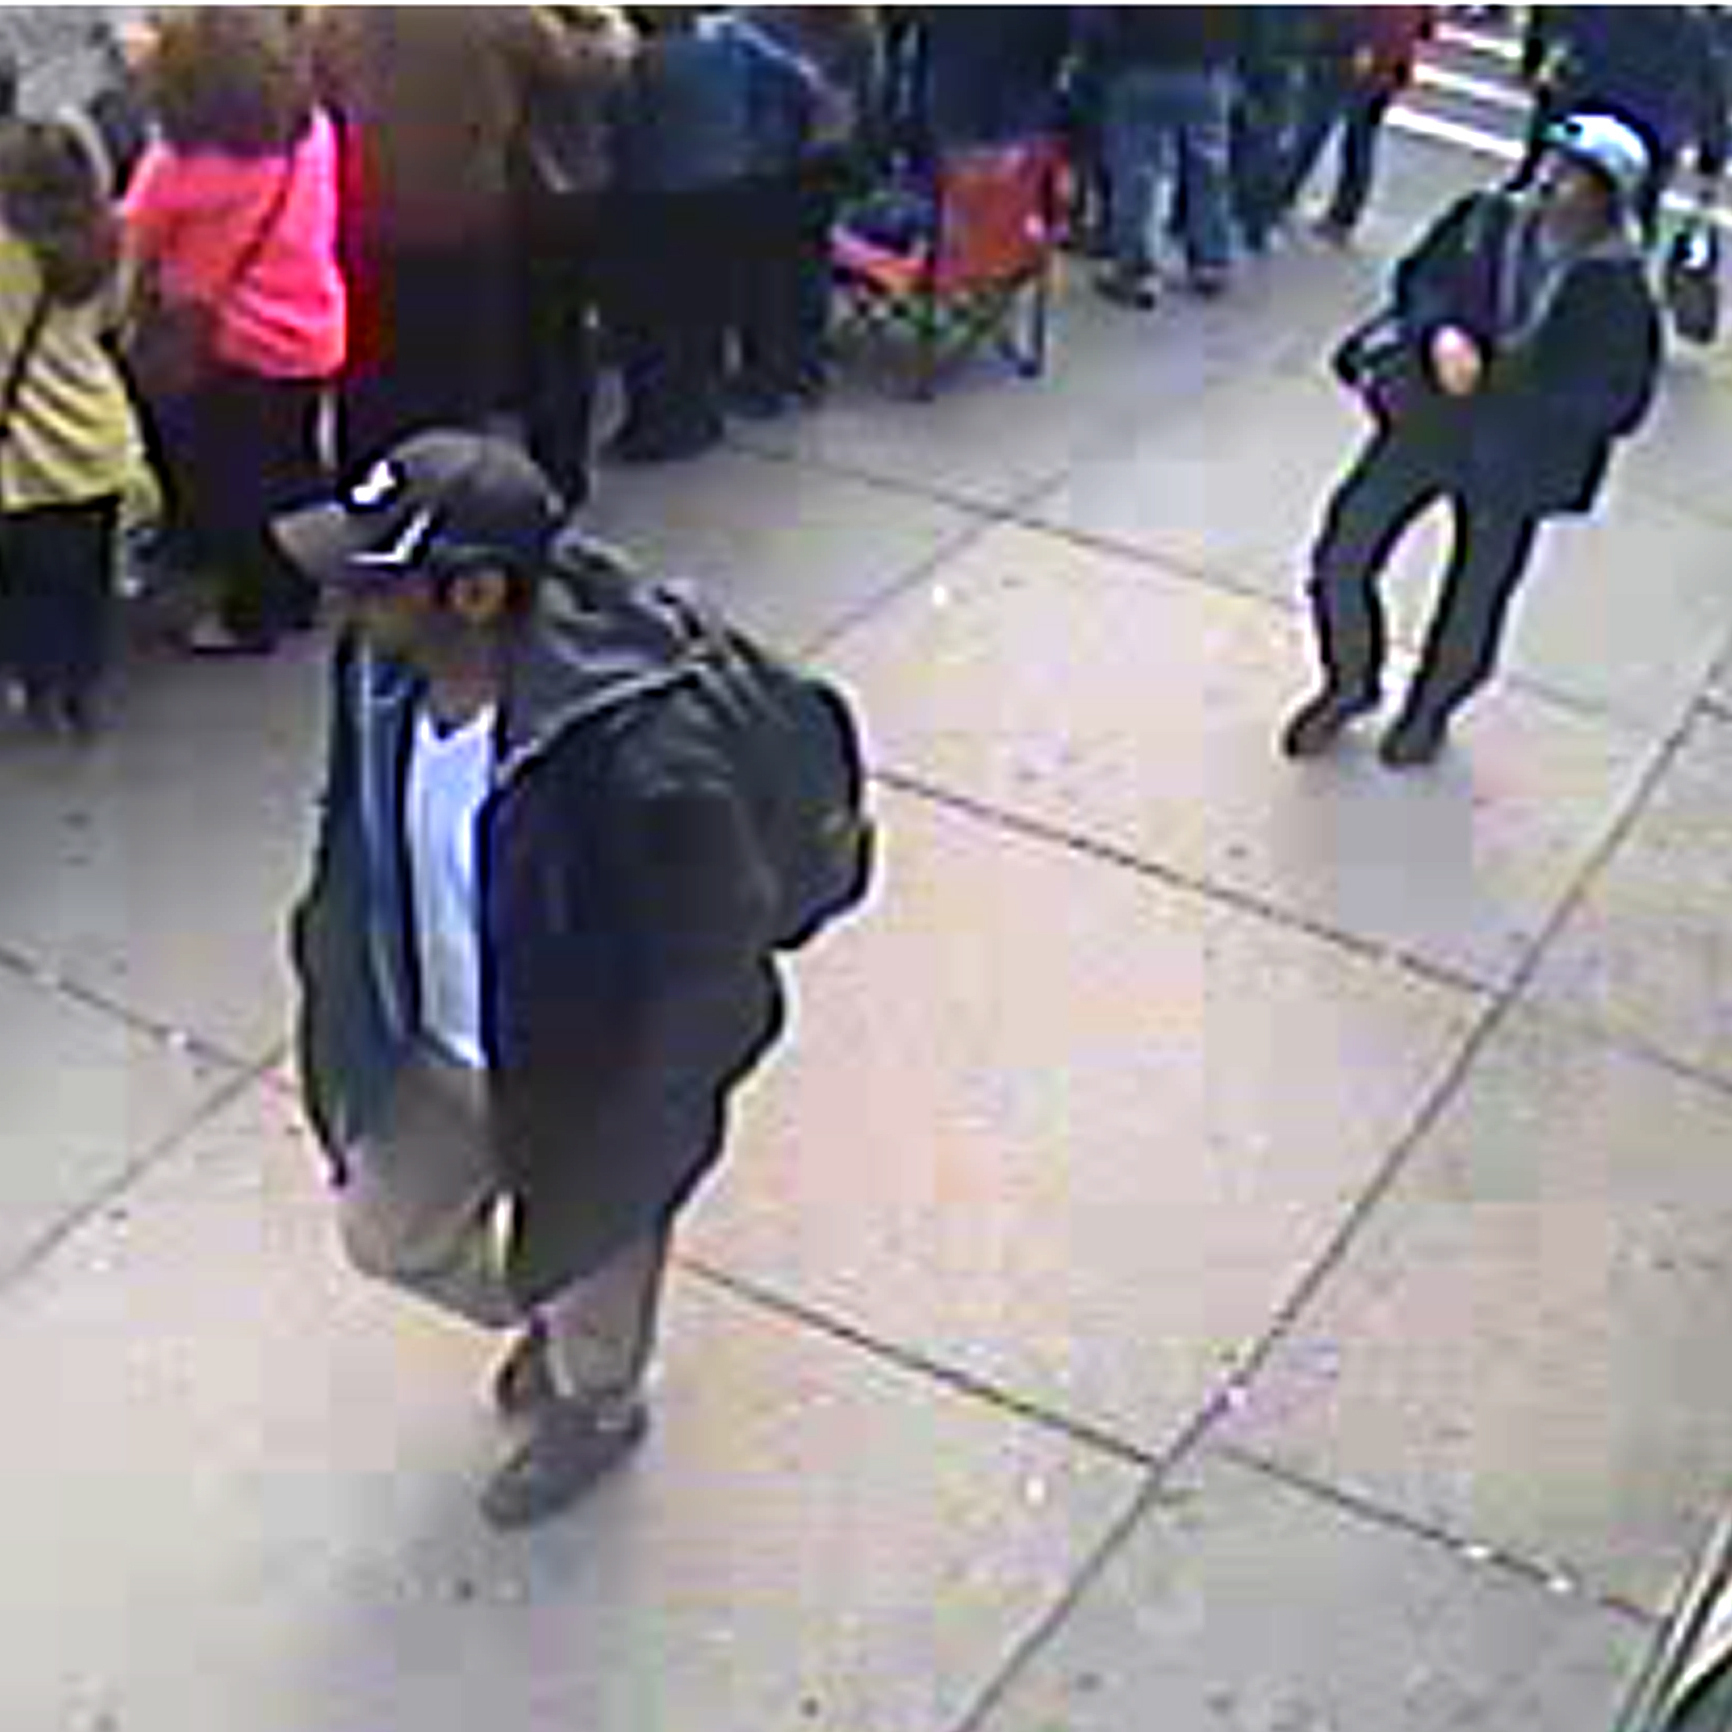 Surveillance video released by the FBI showed two young men, who authorities later identified as Tamerlan Tsarnaev (in black cap) and his brother, Dzhokhar (in white cap), at the scene shortly before the Boston Marathon bombings.